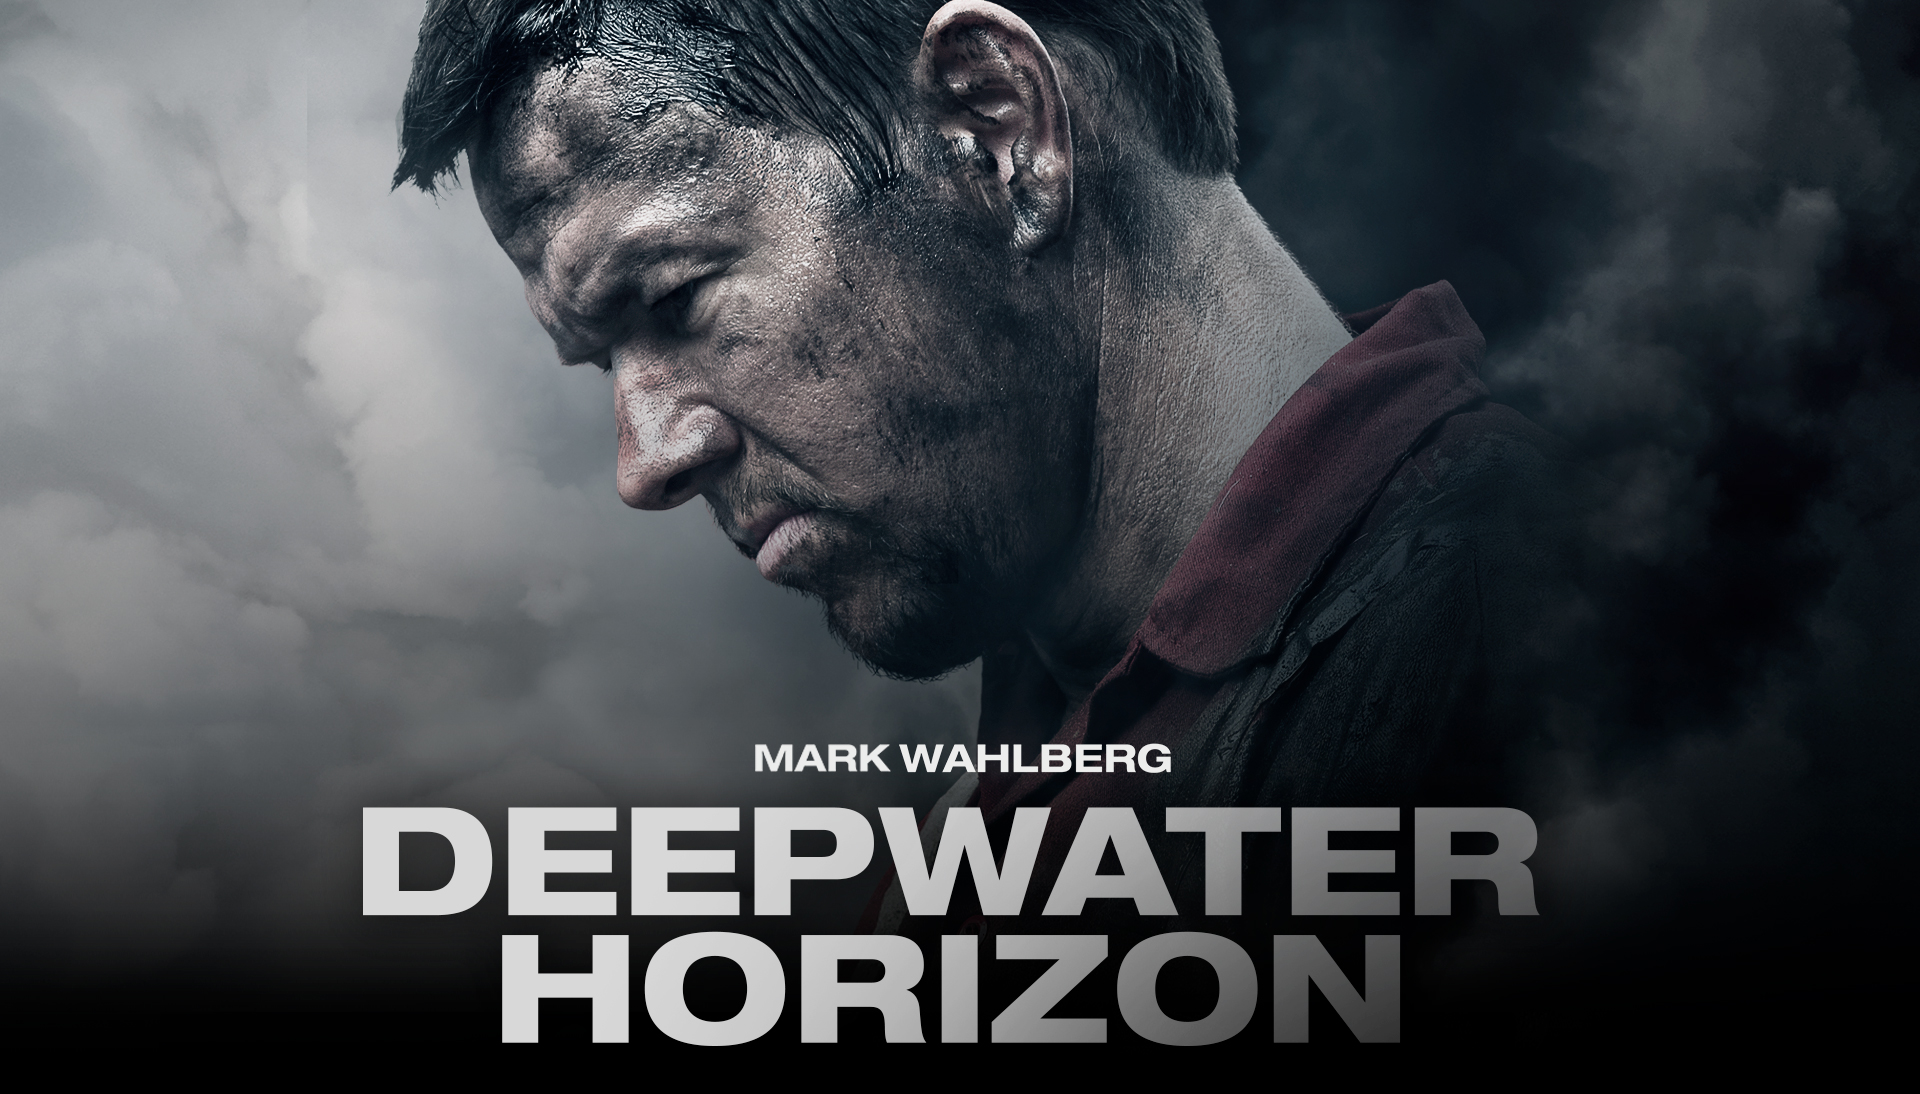 Deepwater Horizon 2016 Movie Review - Newslibre